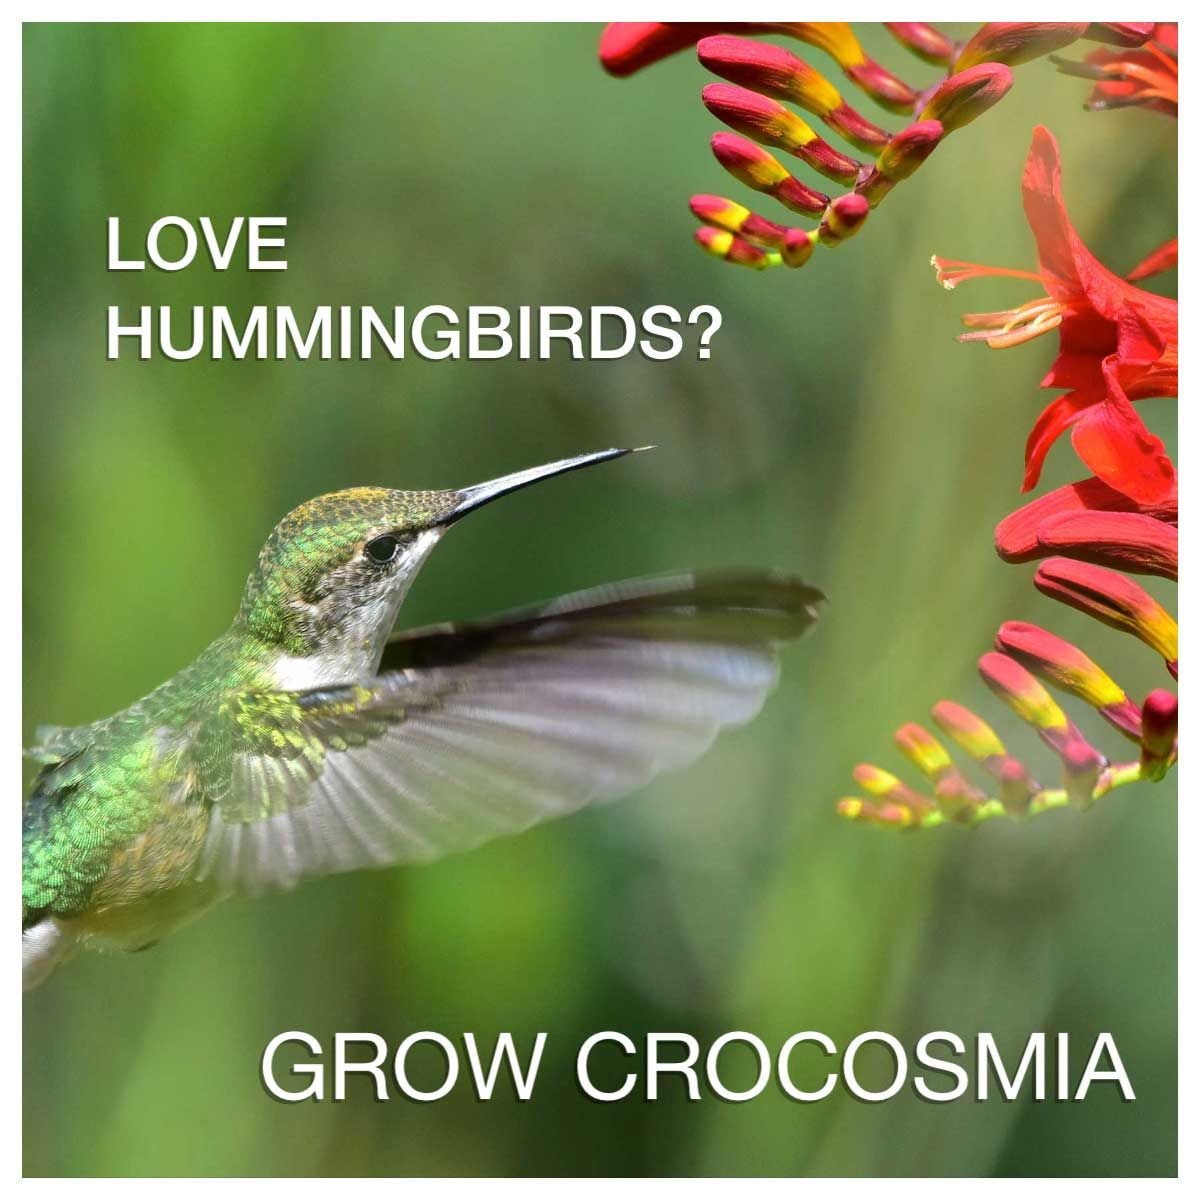 Love hummingbirds grow some crocosmia red flowers perennials and hummingbirds love red flowers and the bright red blossoms of crocosmia lucifer are among their favorites mightylinksfo